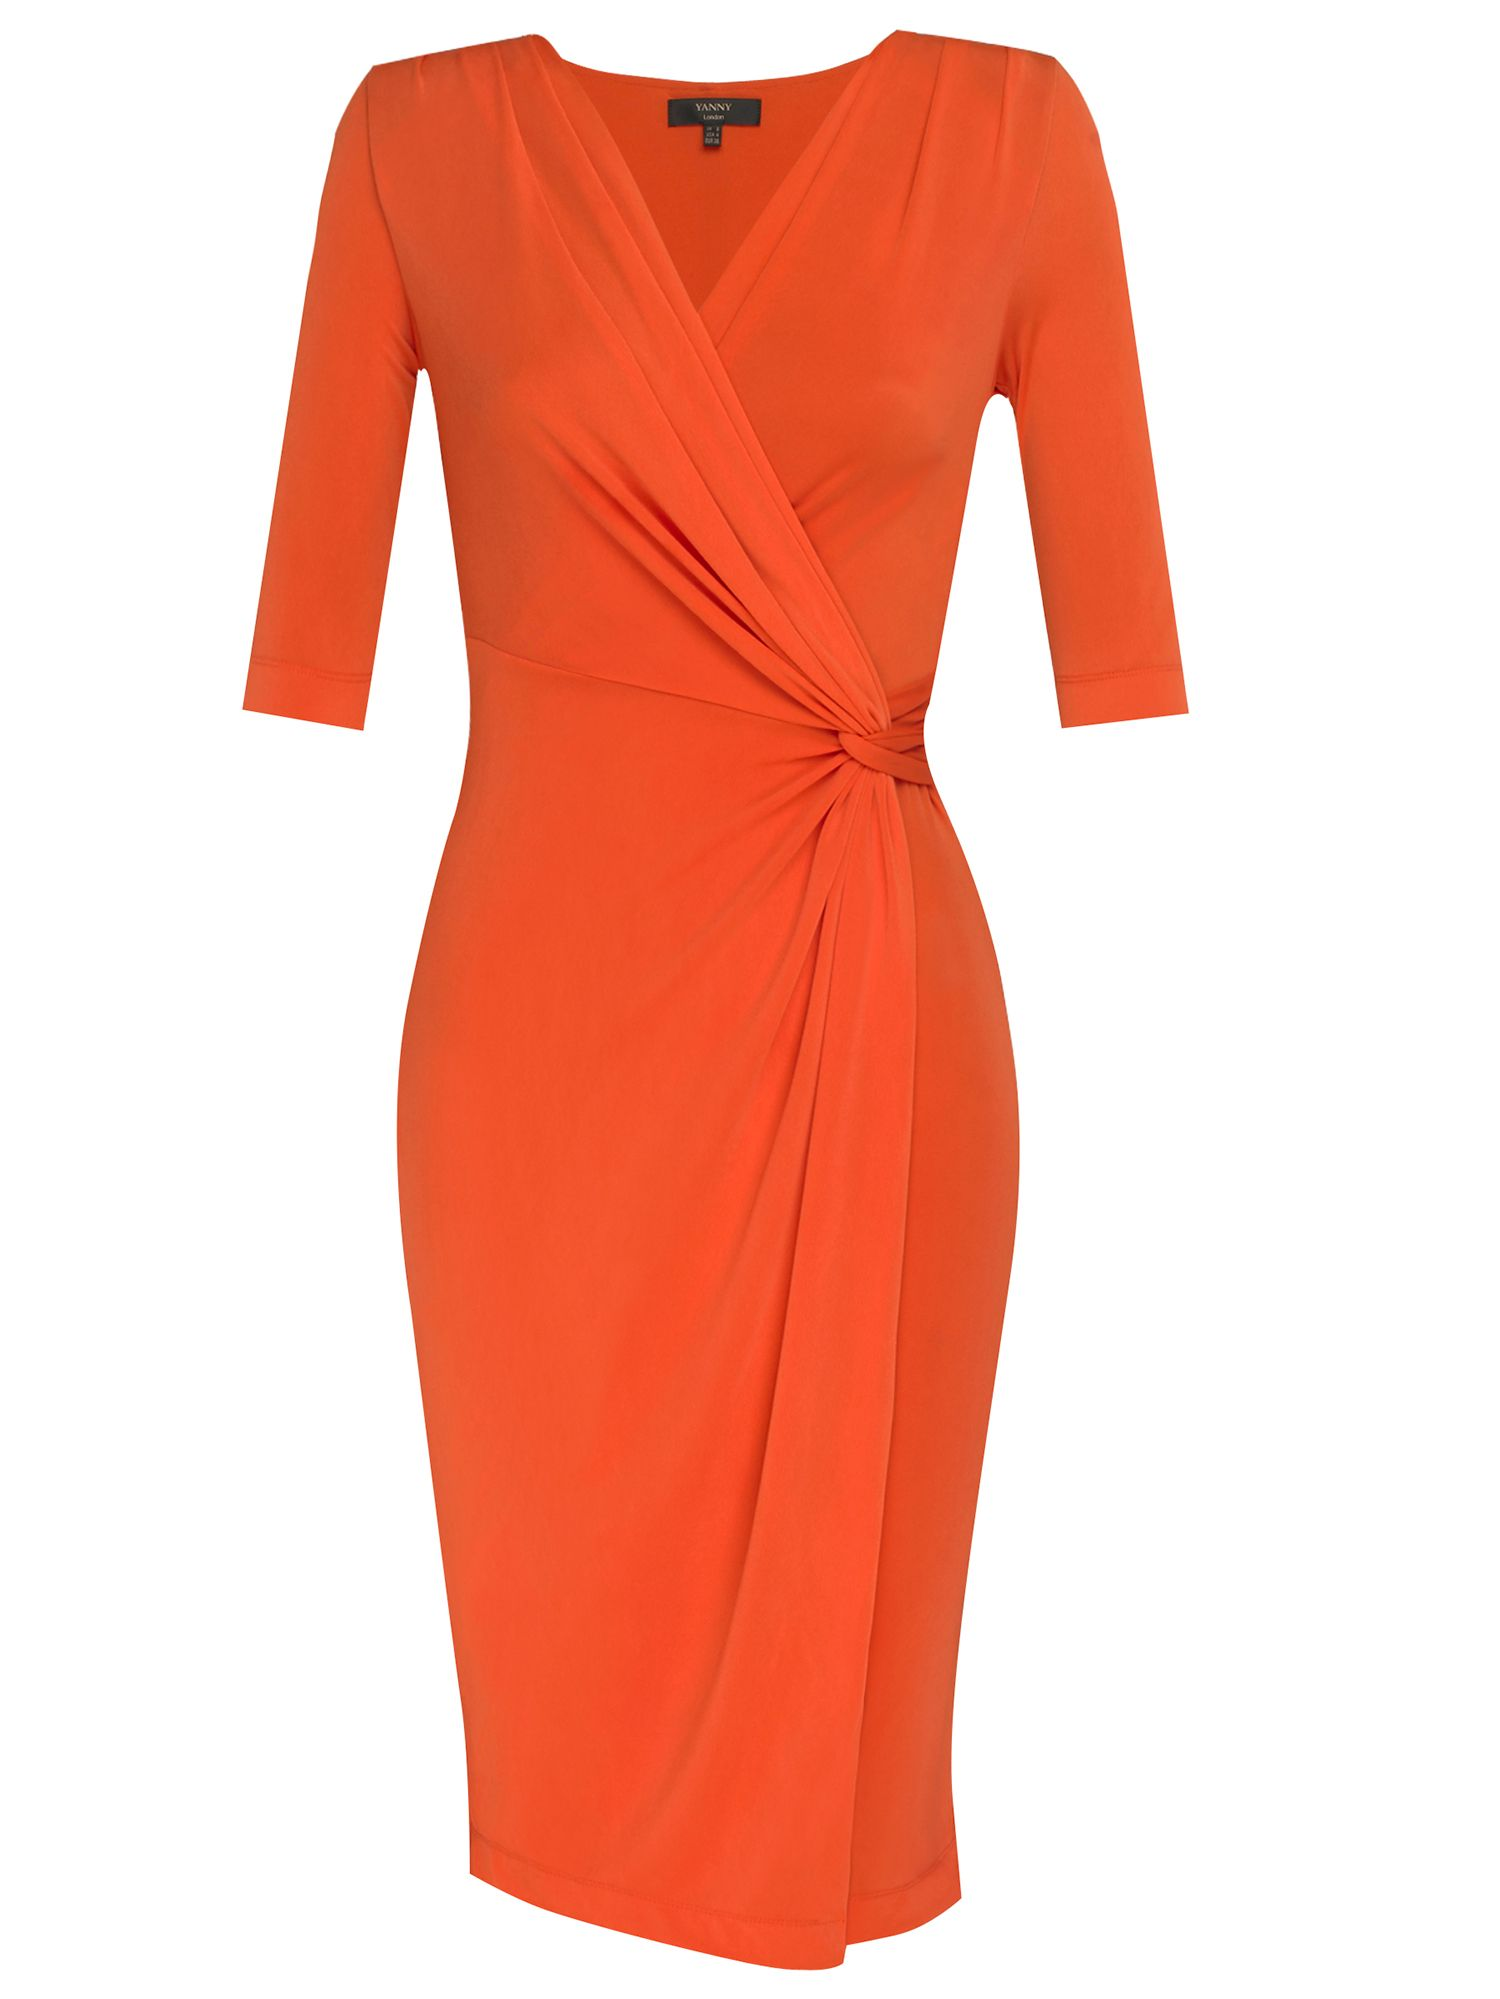 Yanny London 3/4 sleeve wrap jersey dress, Coral